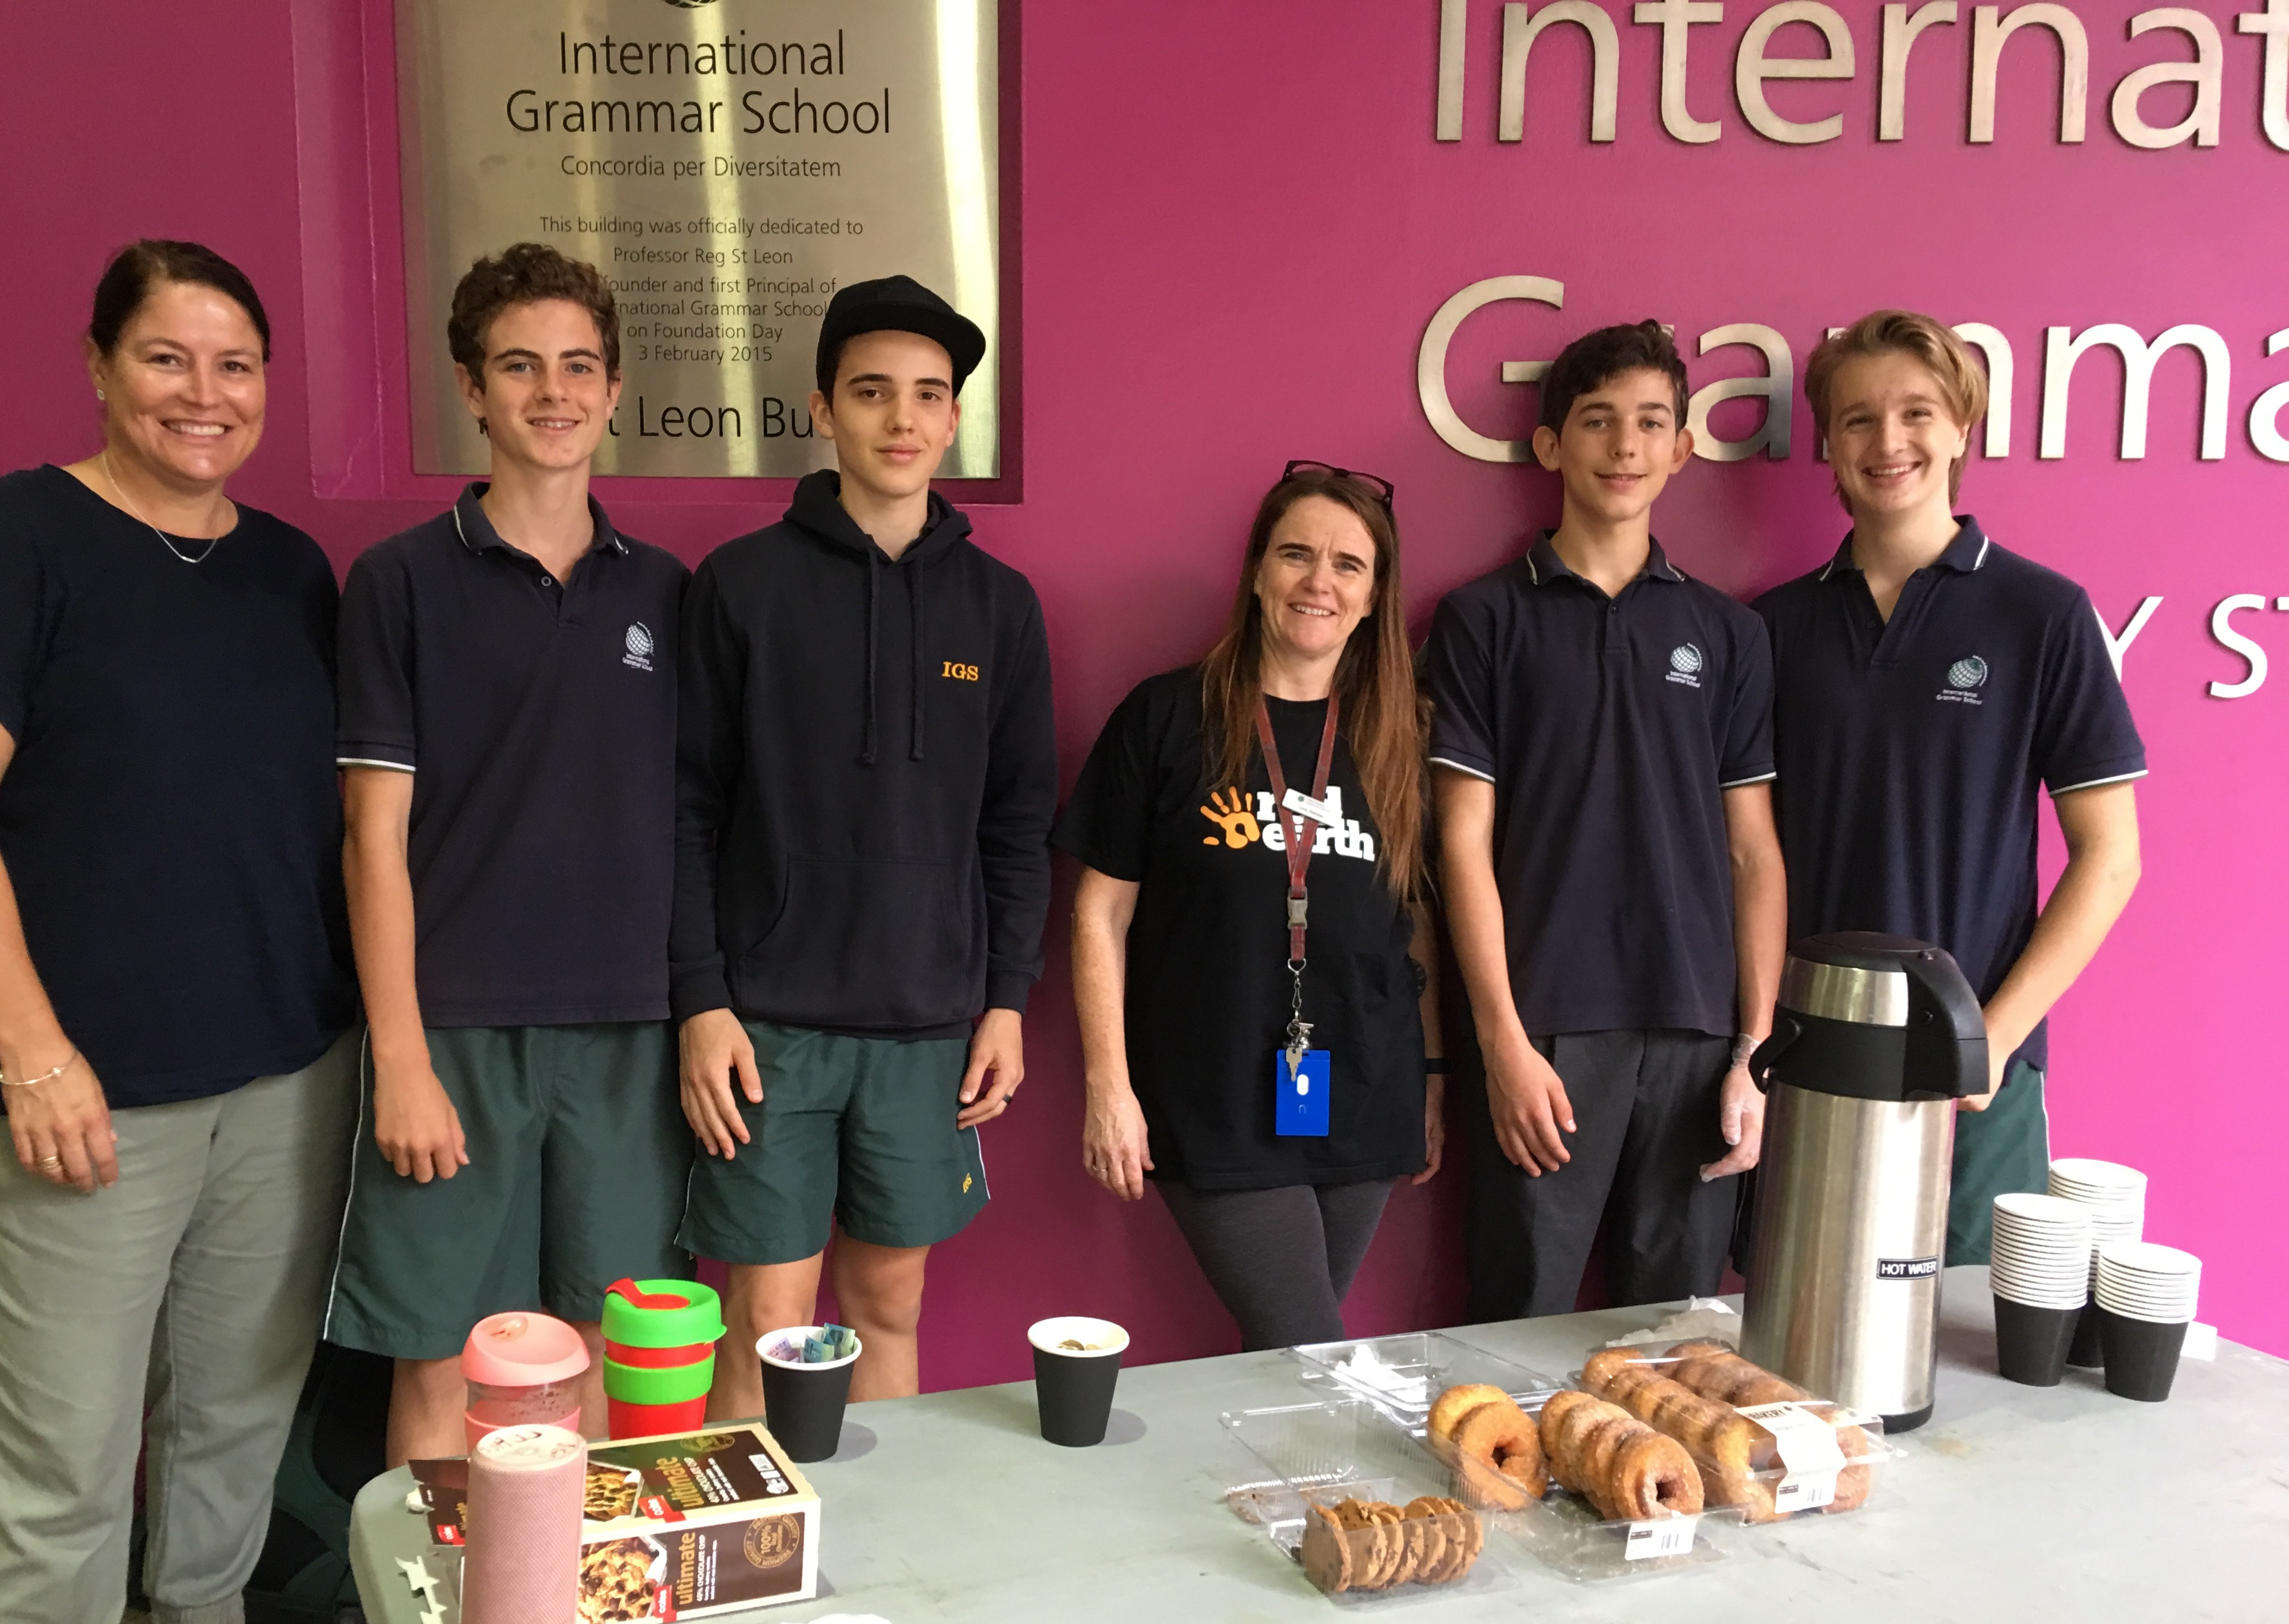 IGS Red Earth expedition fundraising